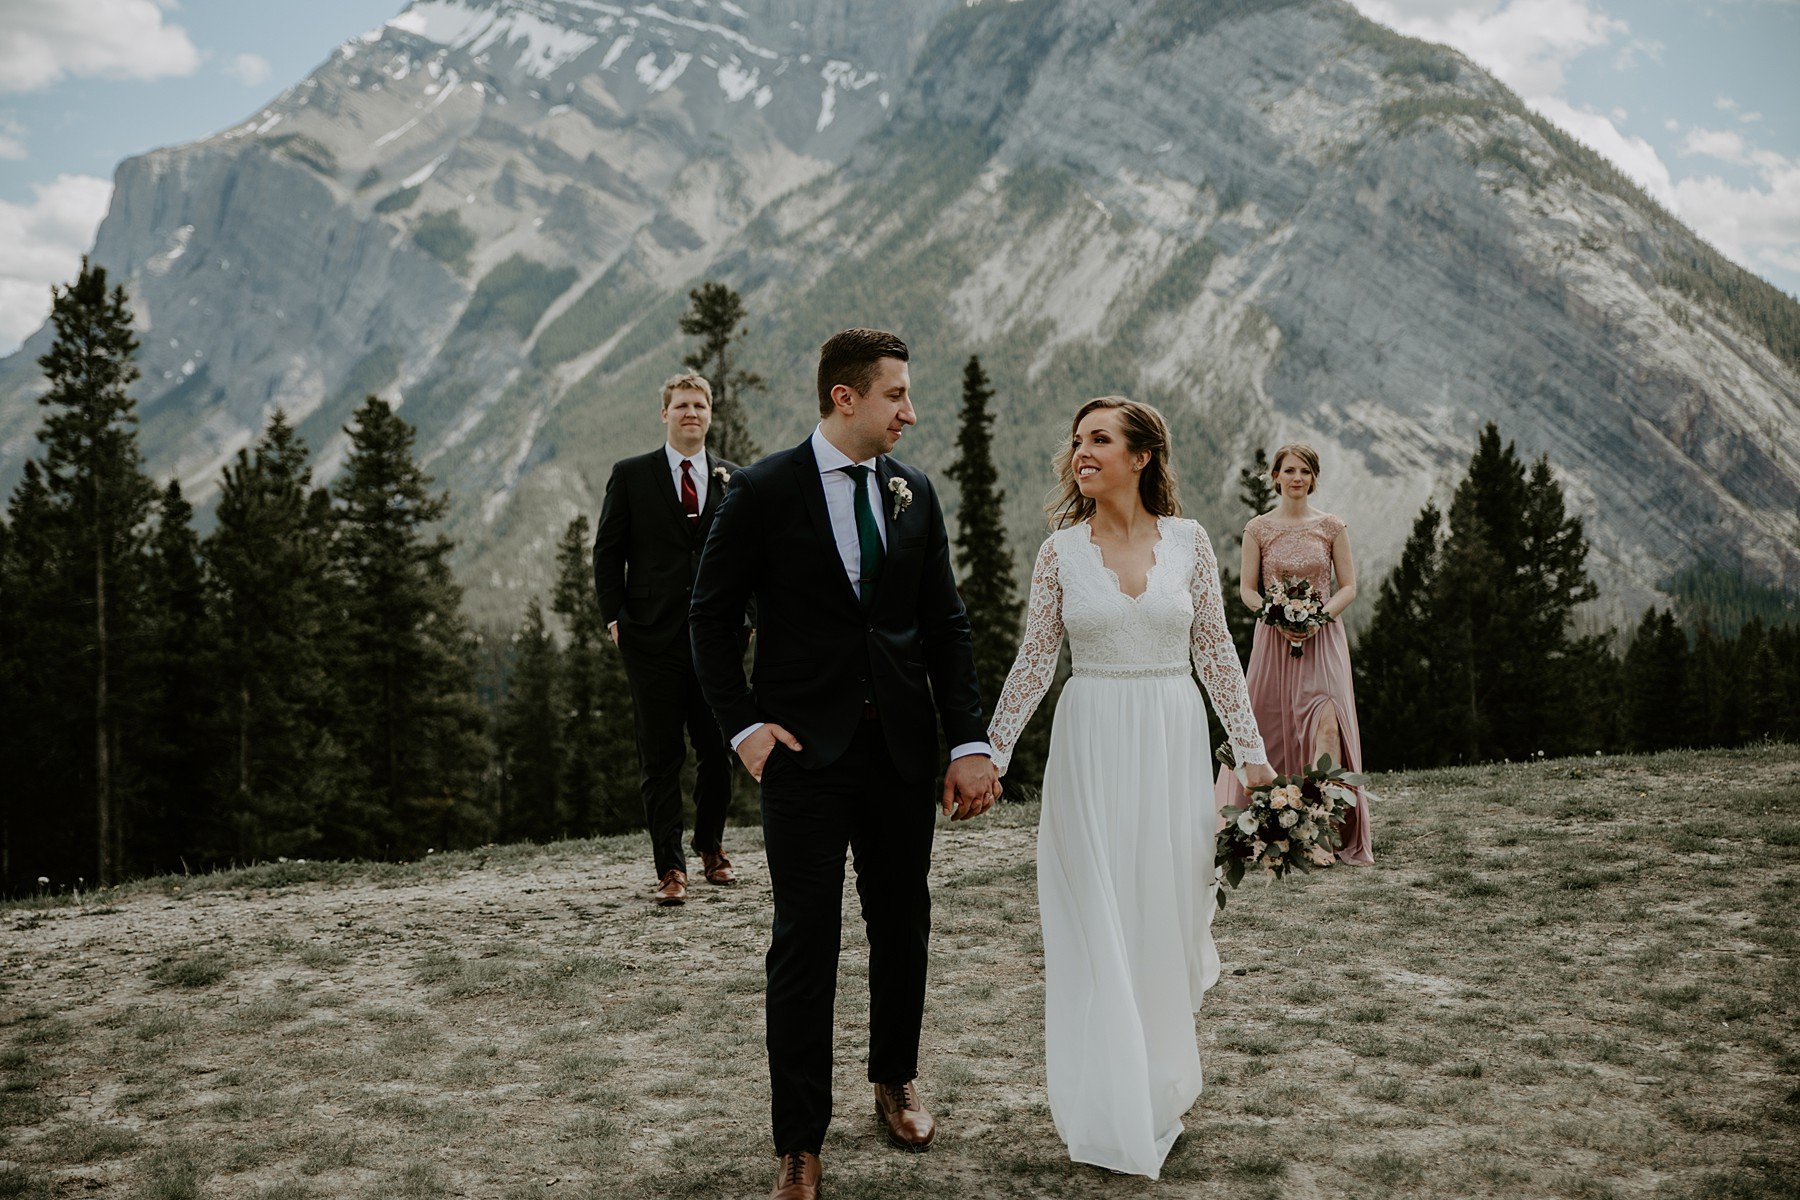 Teller of Tales Photography - Elopement - Tunnel Mountain Banff-64.jpg